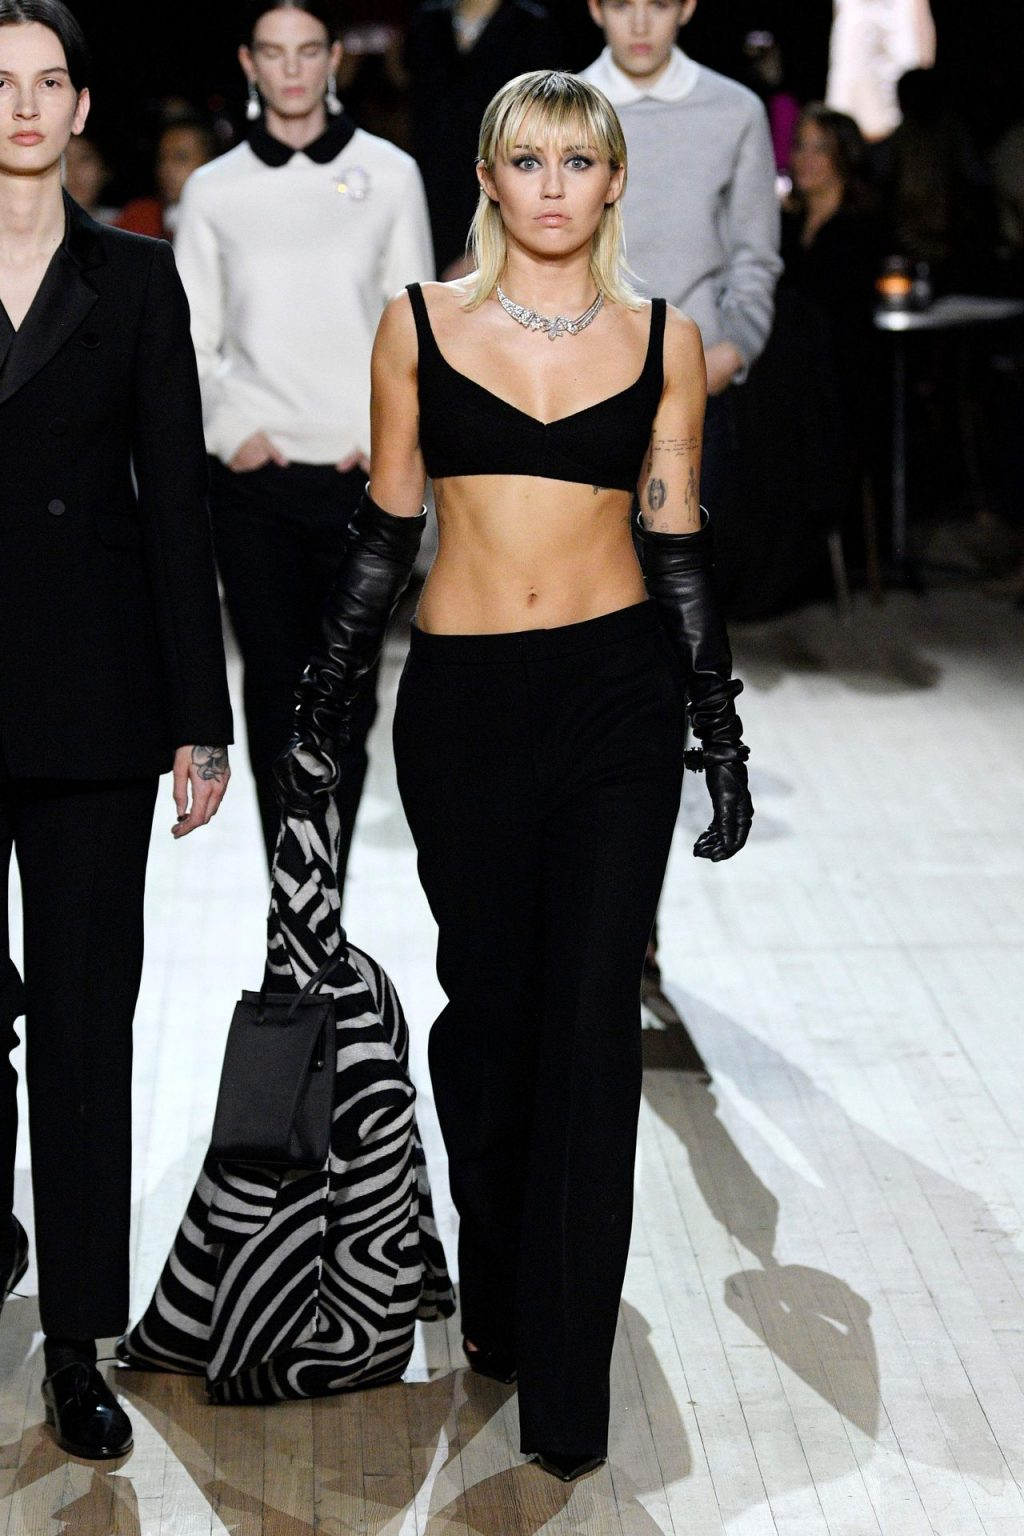 Miley Cyrus Sexy The Fappening Blog 8 4 1024x1536 - Miley Cyrus Walks the Runway at the Marc Jacobs Show (22 Photos + GIF & Video)